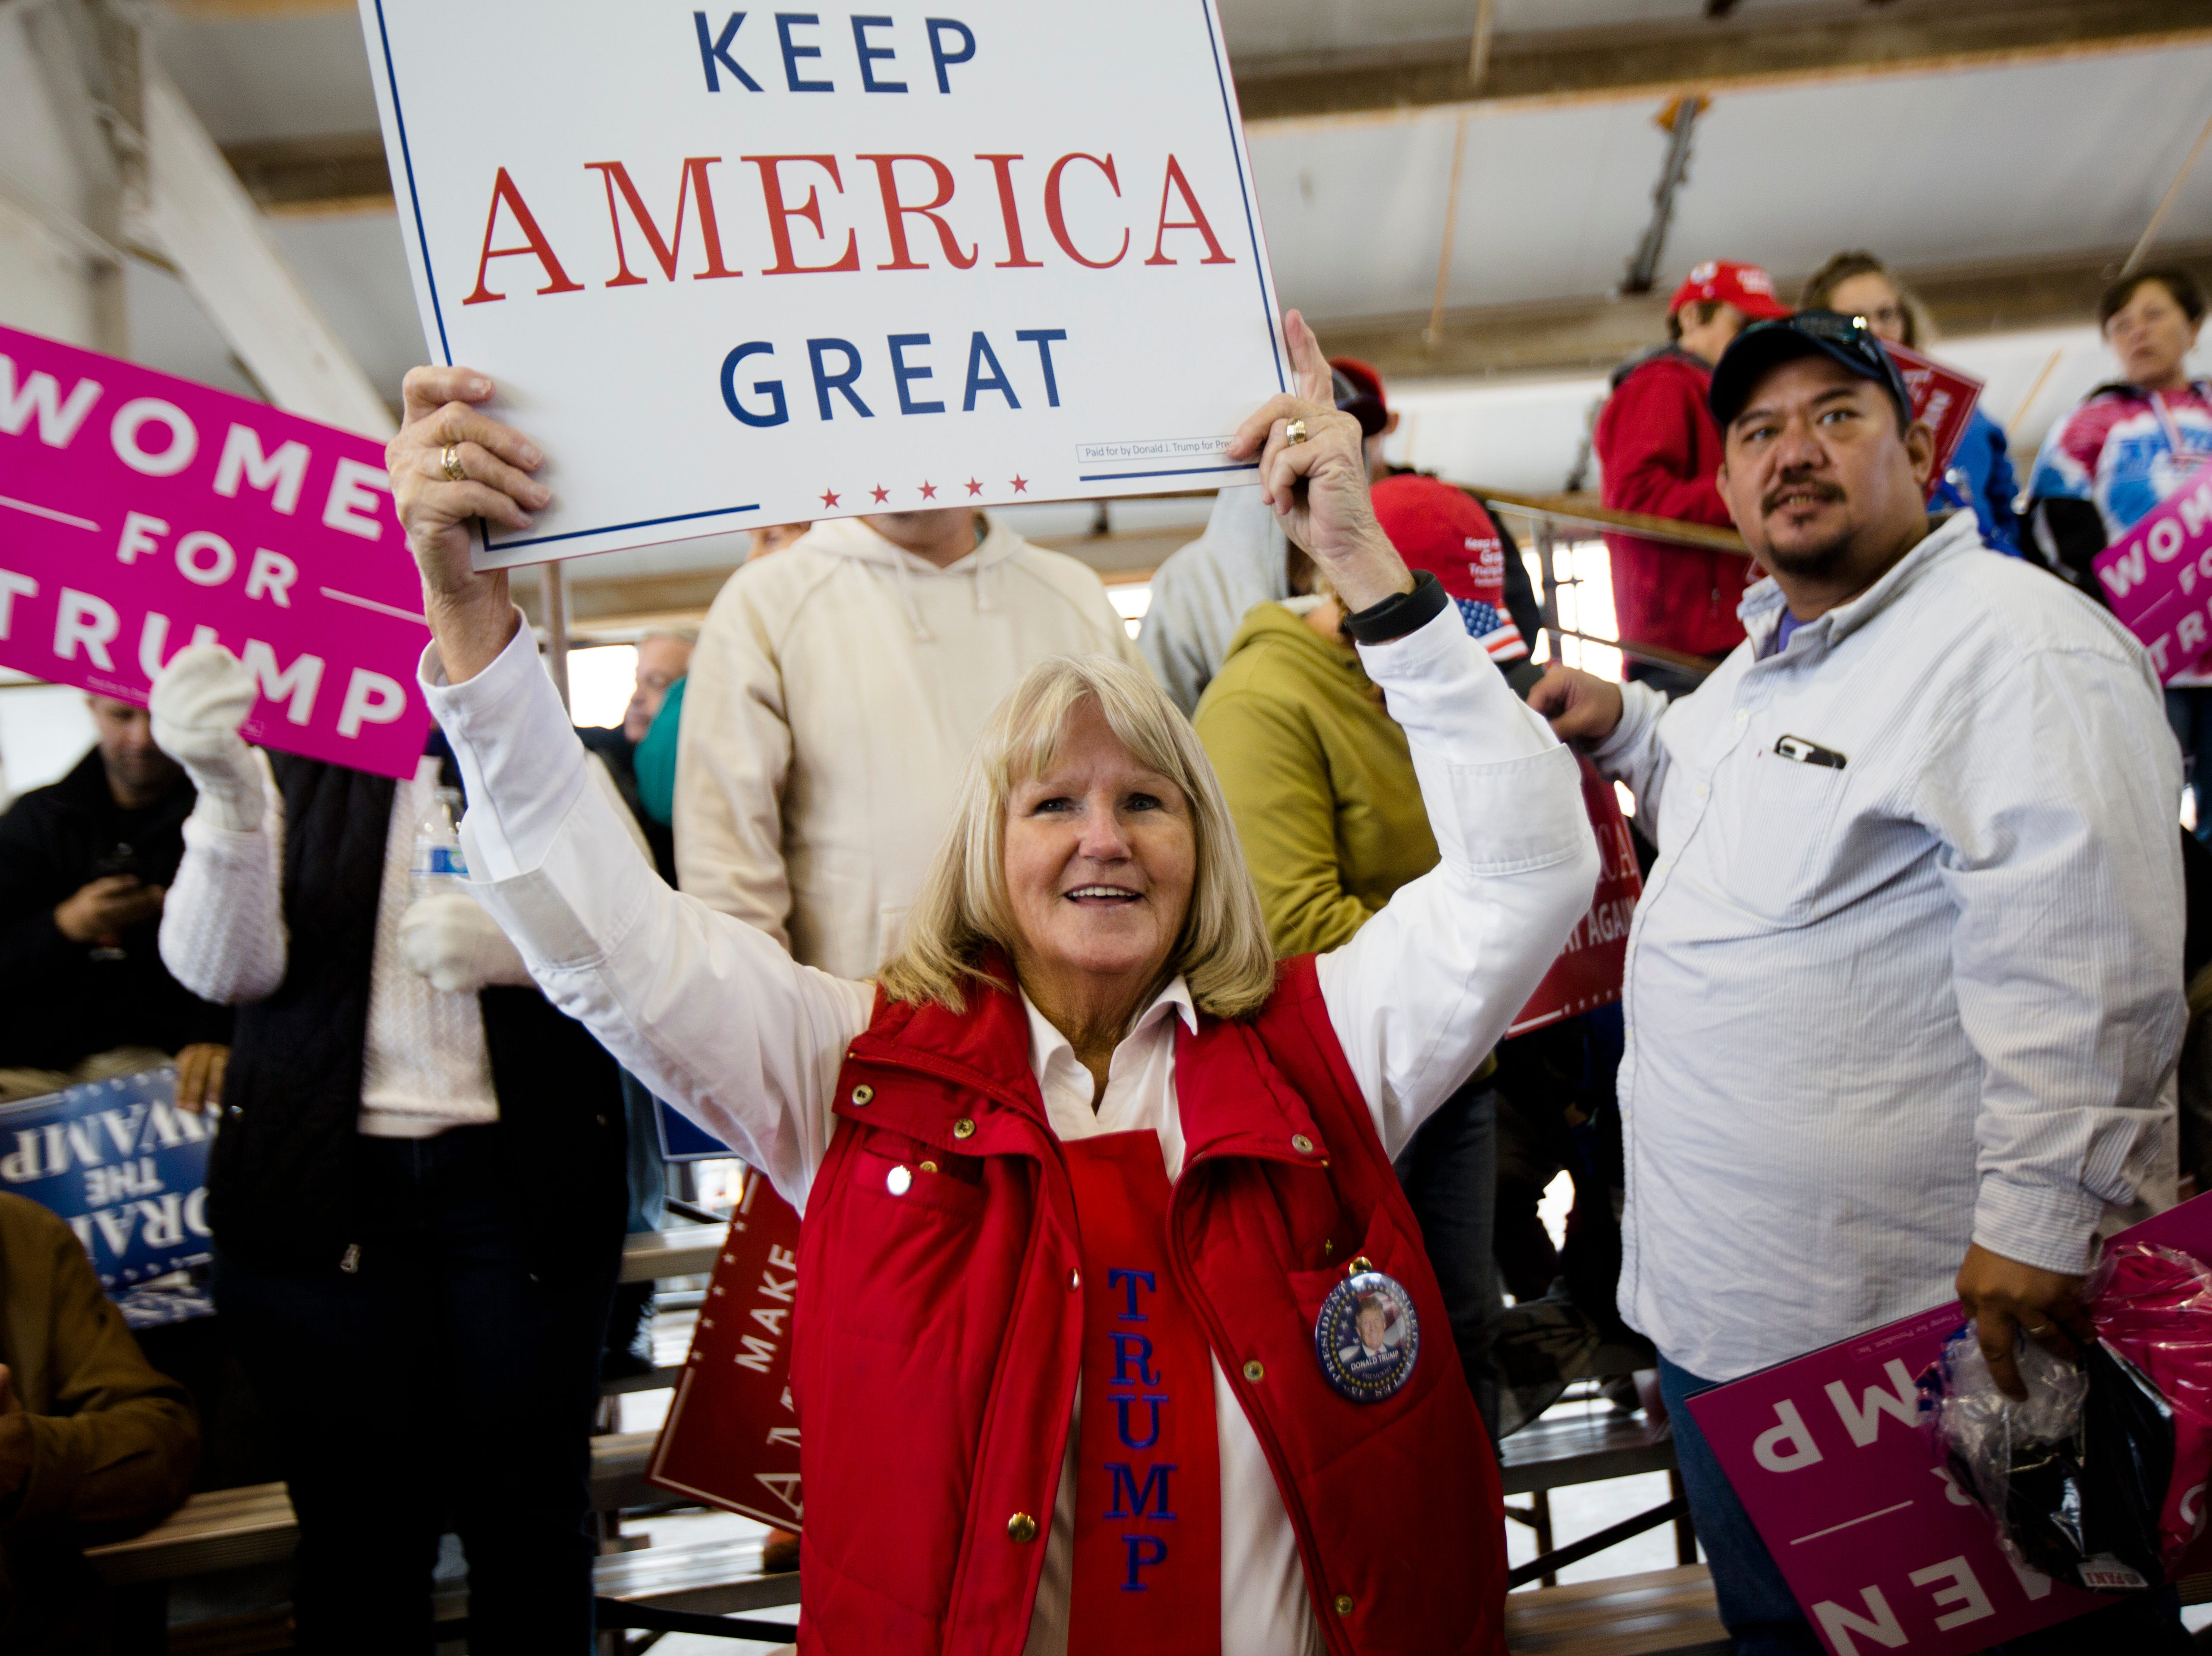 Carol Blasingame, of Cincinnati, waives a sign while waiting for the President at President Donald J. TrumpÕs Make America Great Again Rally in Lebanon, Ohio, on Friday, Oct. 12, 2018.